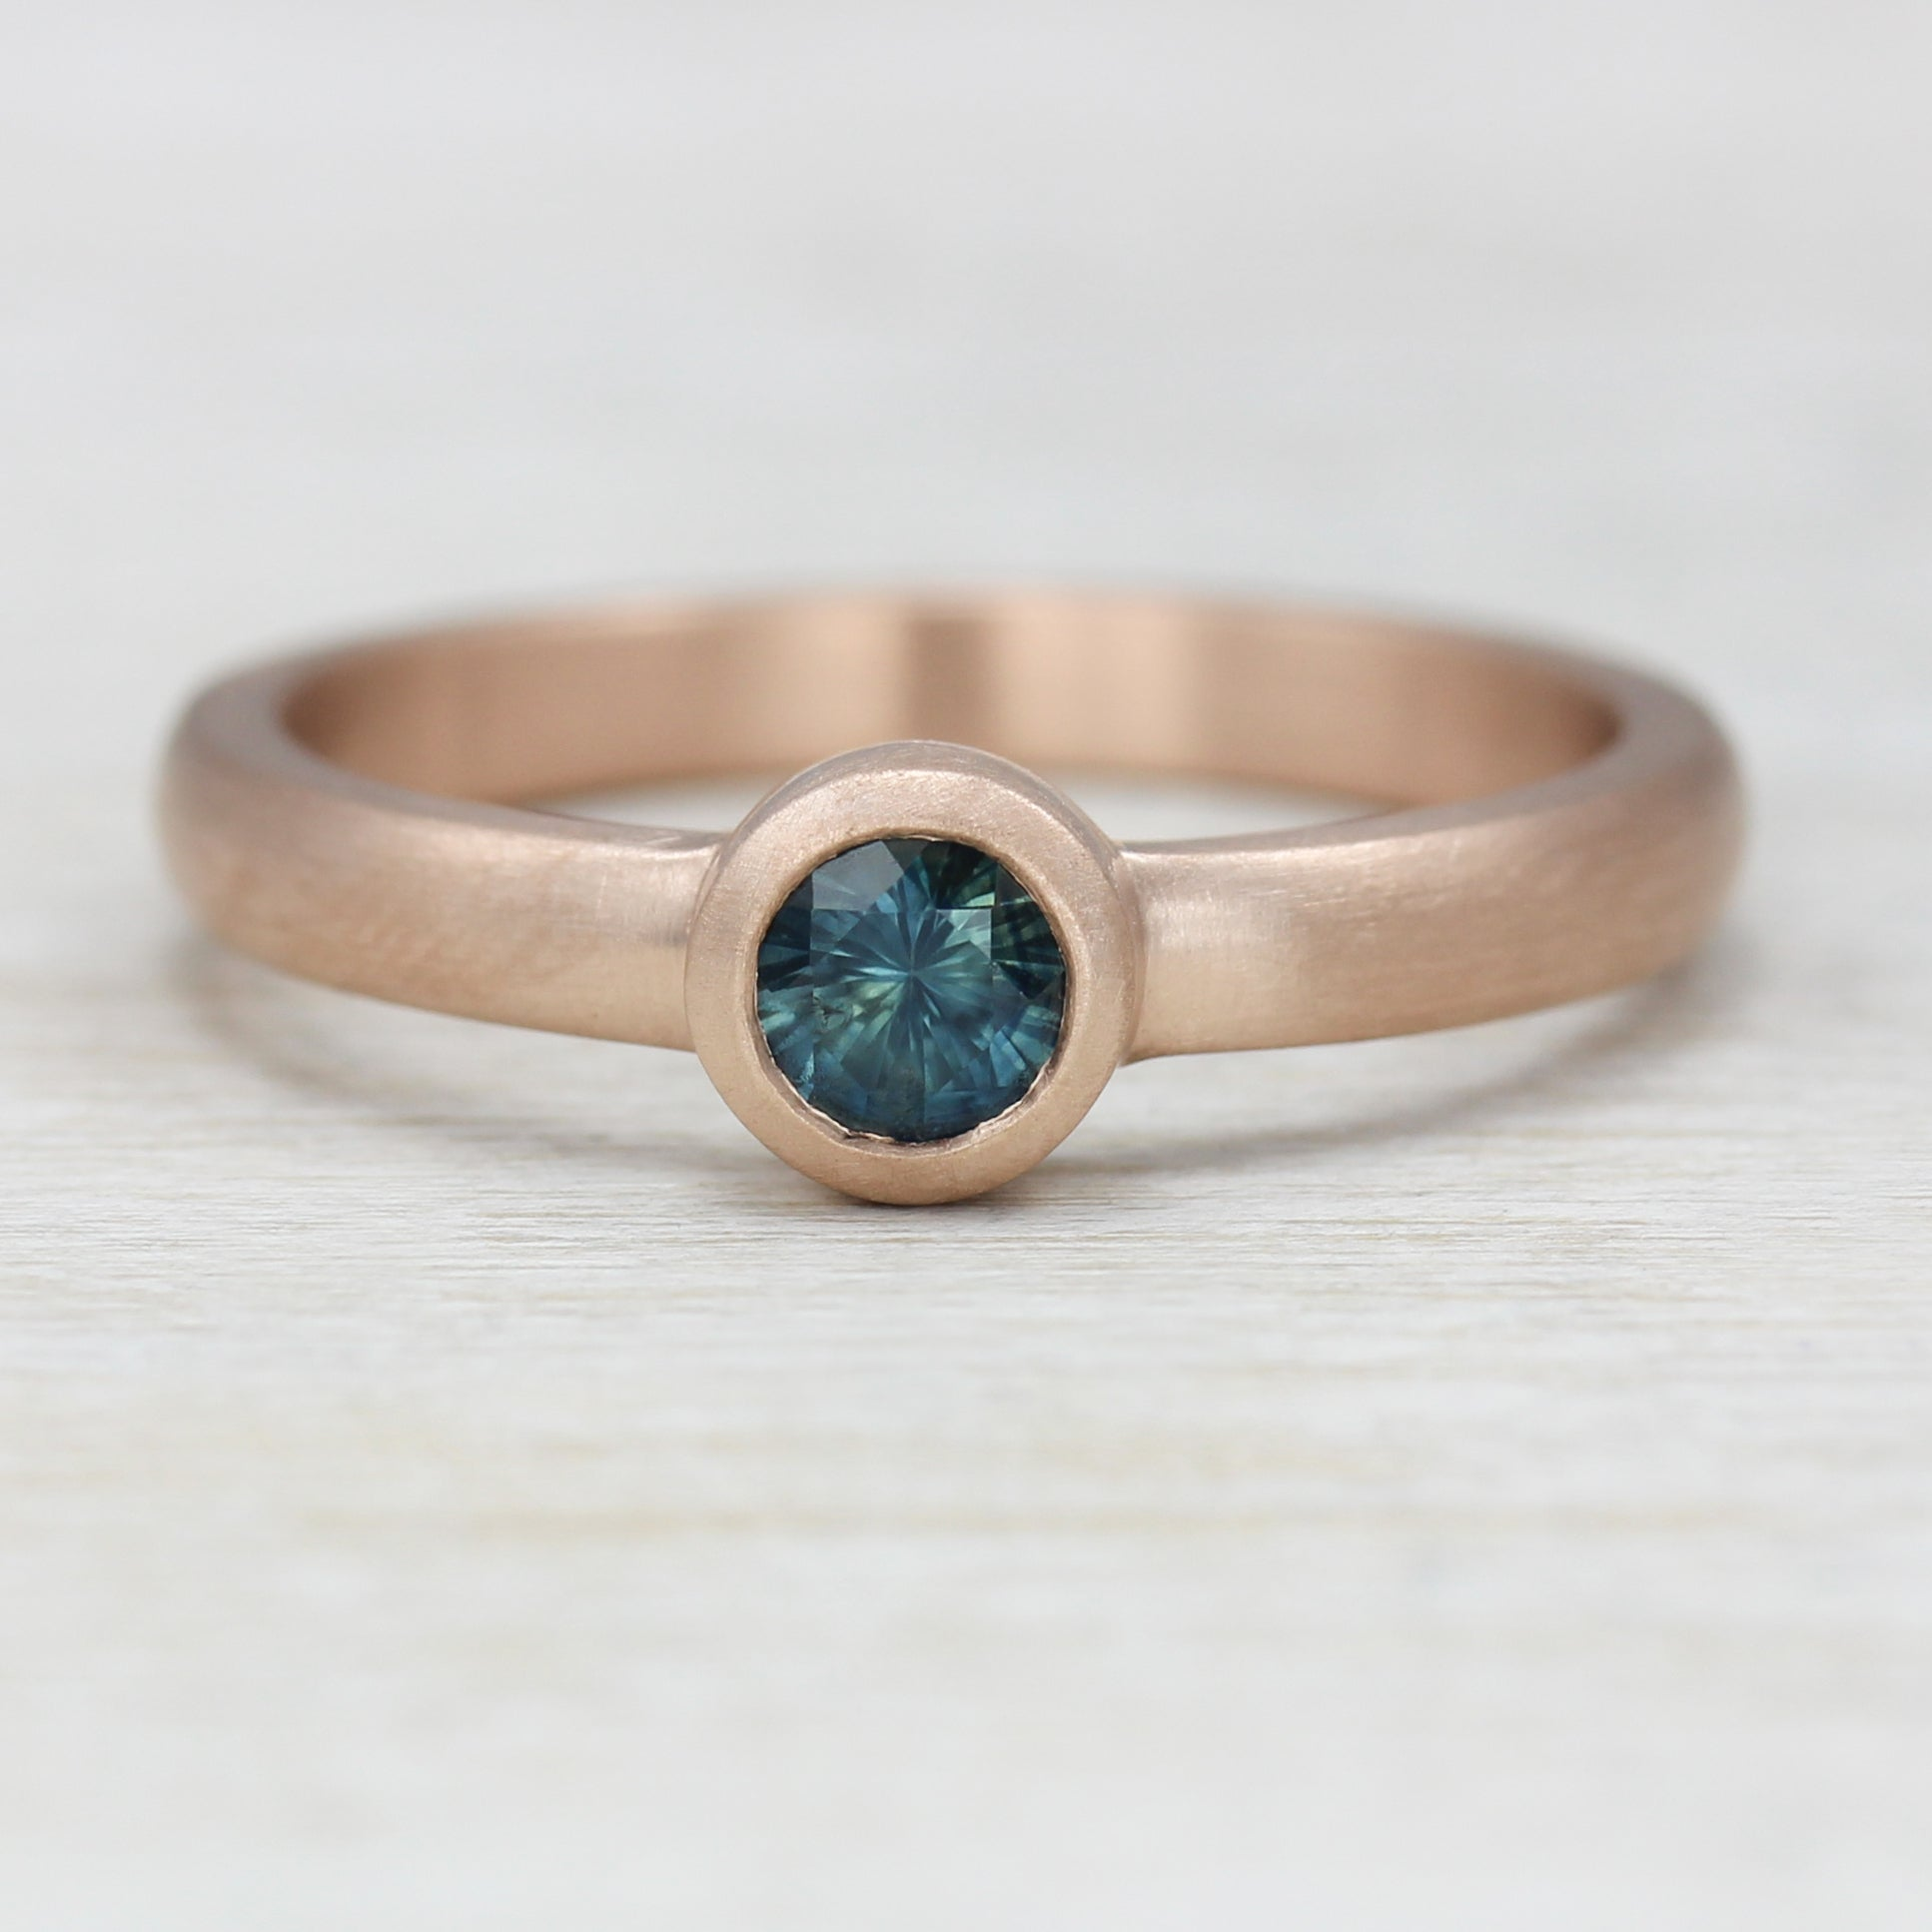 Rose Gold Solitaire with Fair Trade Teal Blue Sapphire